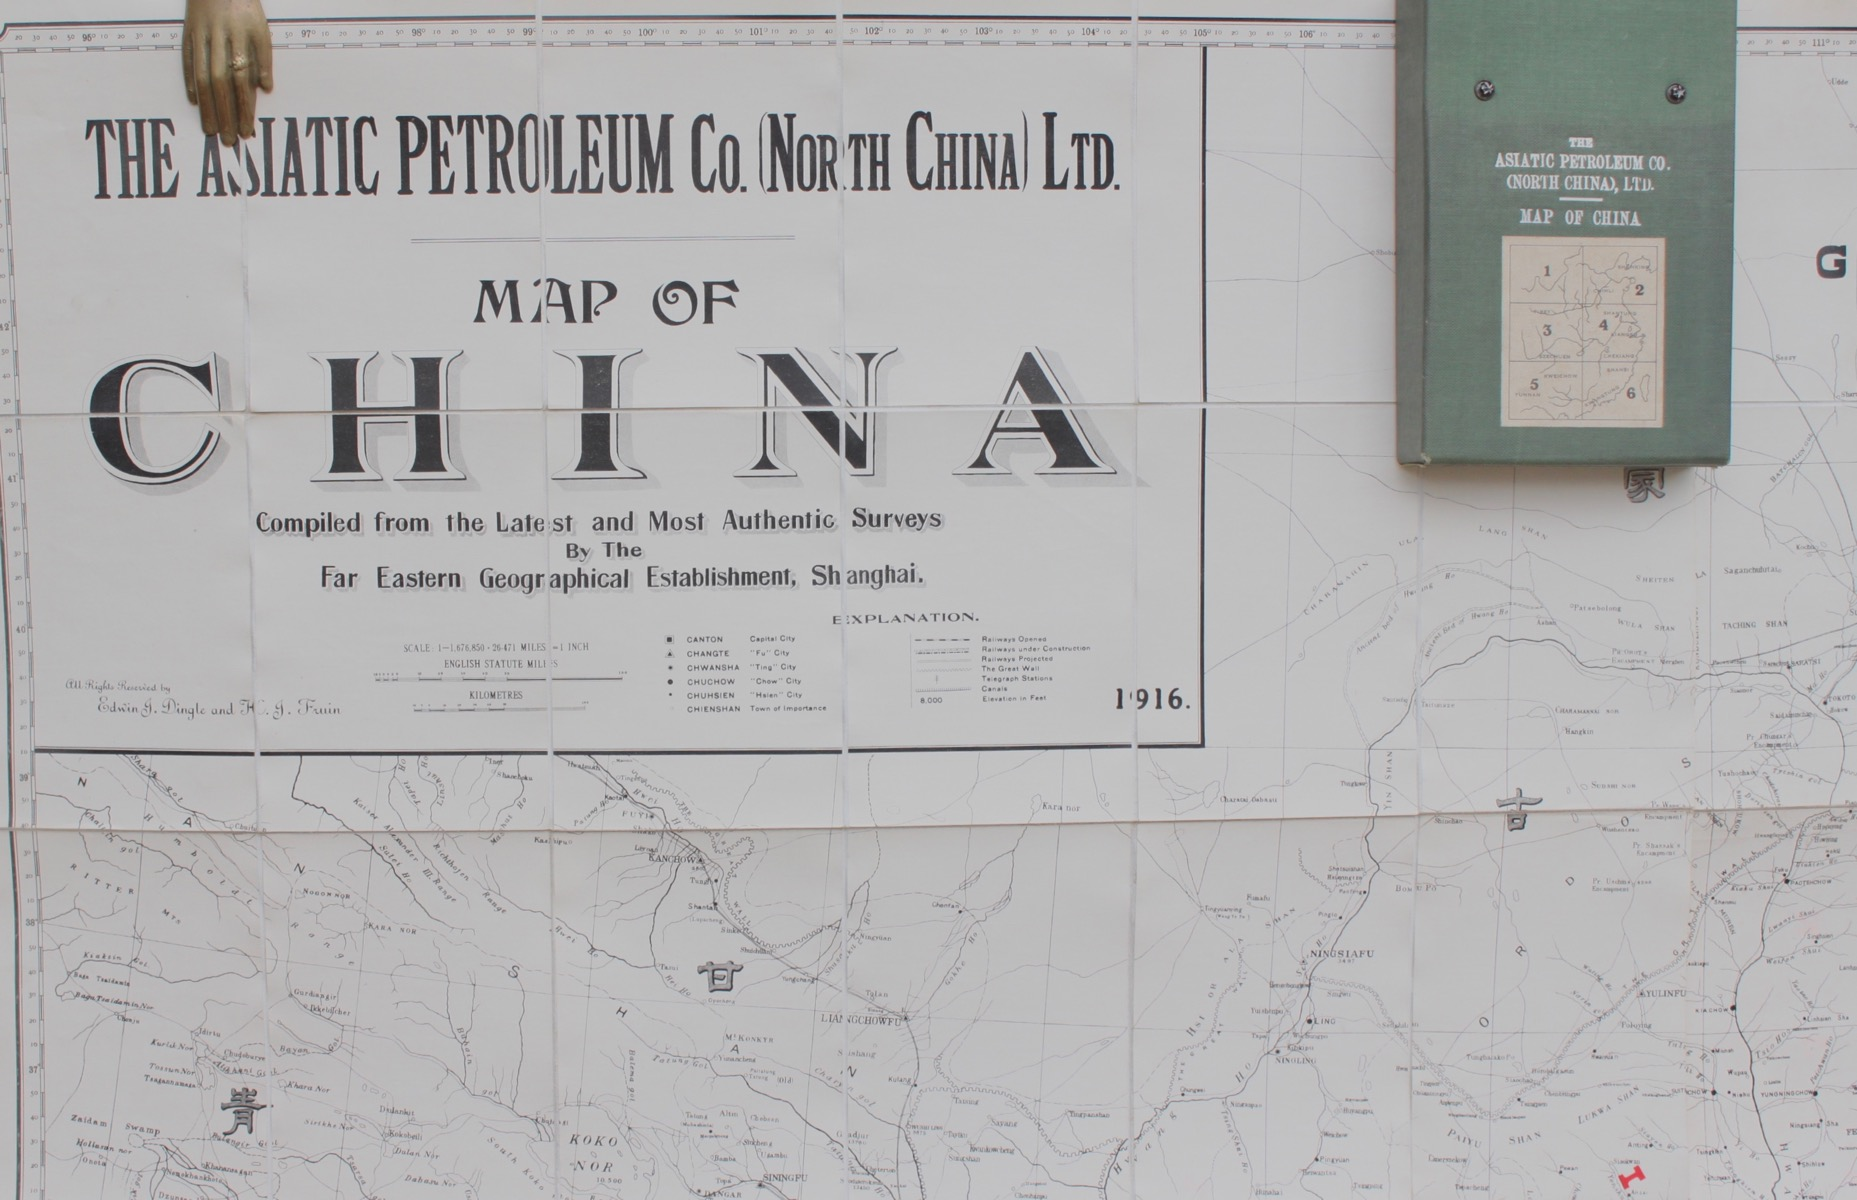 Image for The Asiatic Petroleum Co. (North China) Ltd. Map of China Compiled From the Latest and Most Authentic Surveys.